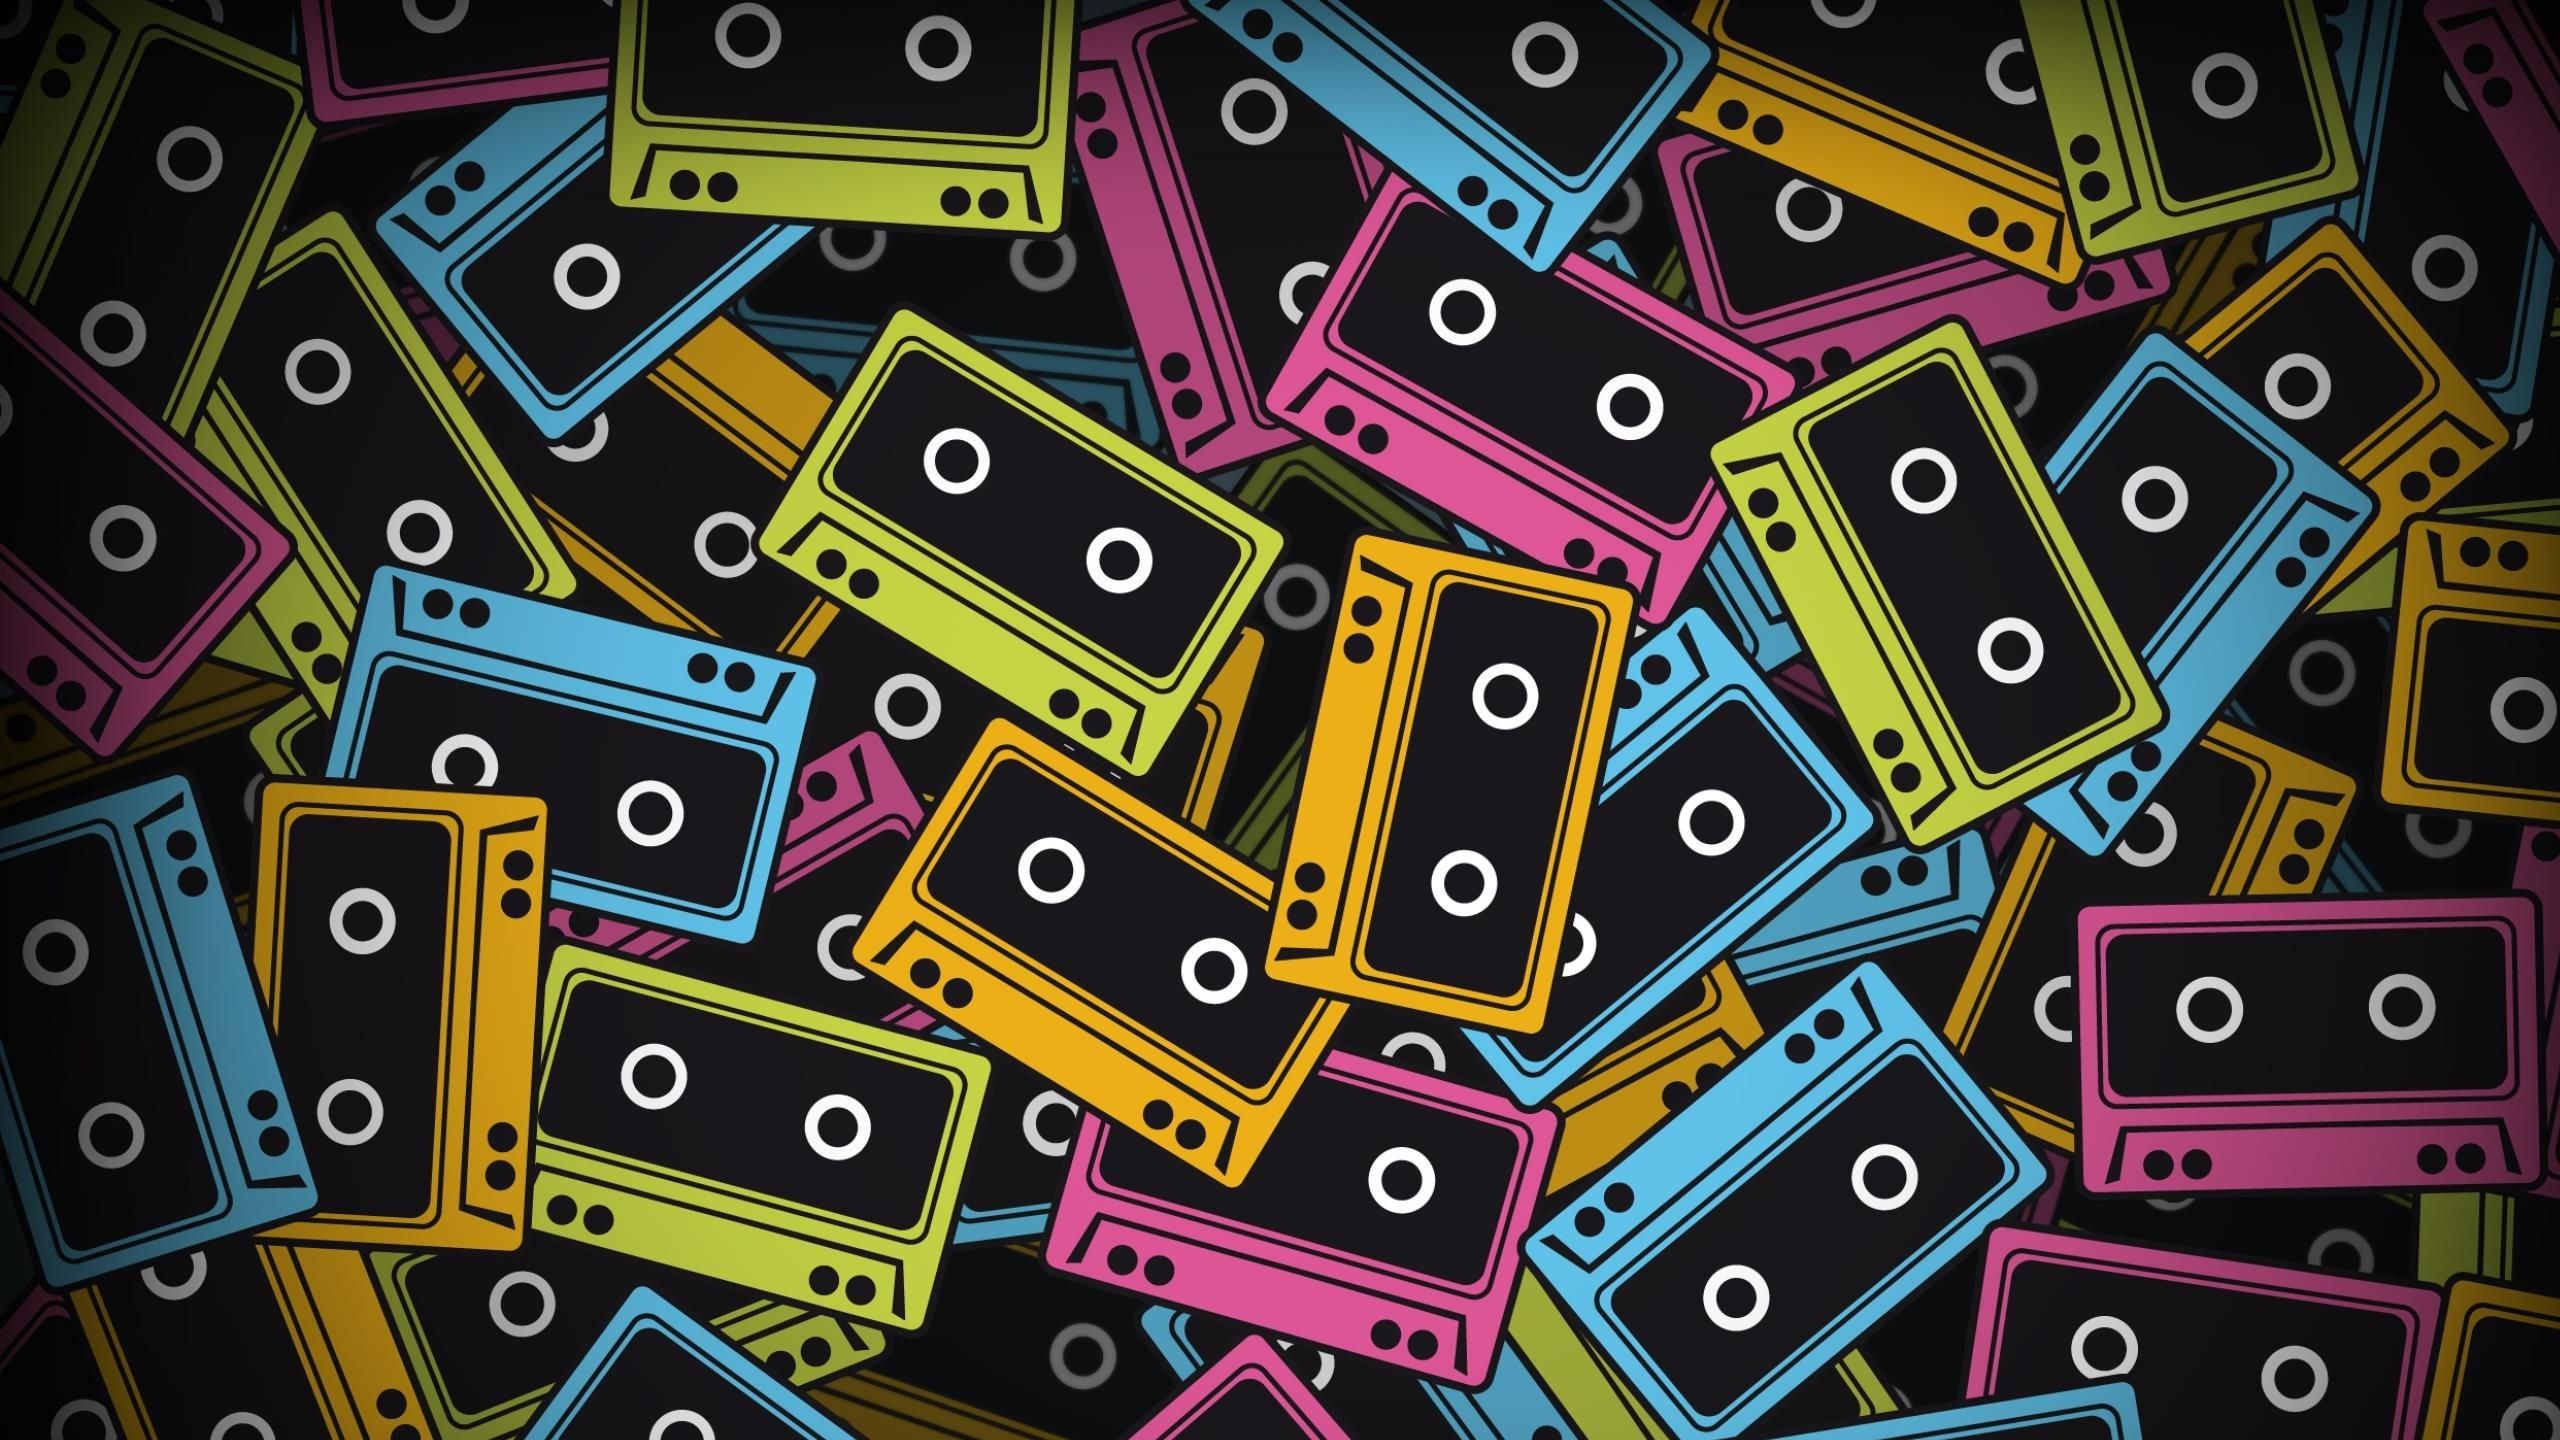 2560x1440 Retro cassette tape background OurSweetSerendipity.com #2019 #Goals  #PersonalGrowth #SelfLove #Serendipity #Love #Marriage #Wife #Husband  #Family #HouseWife ...